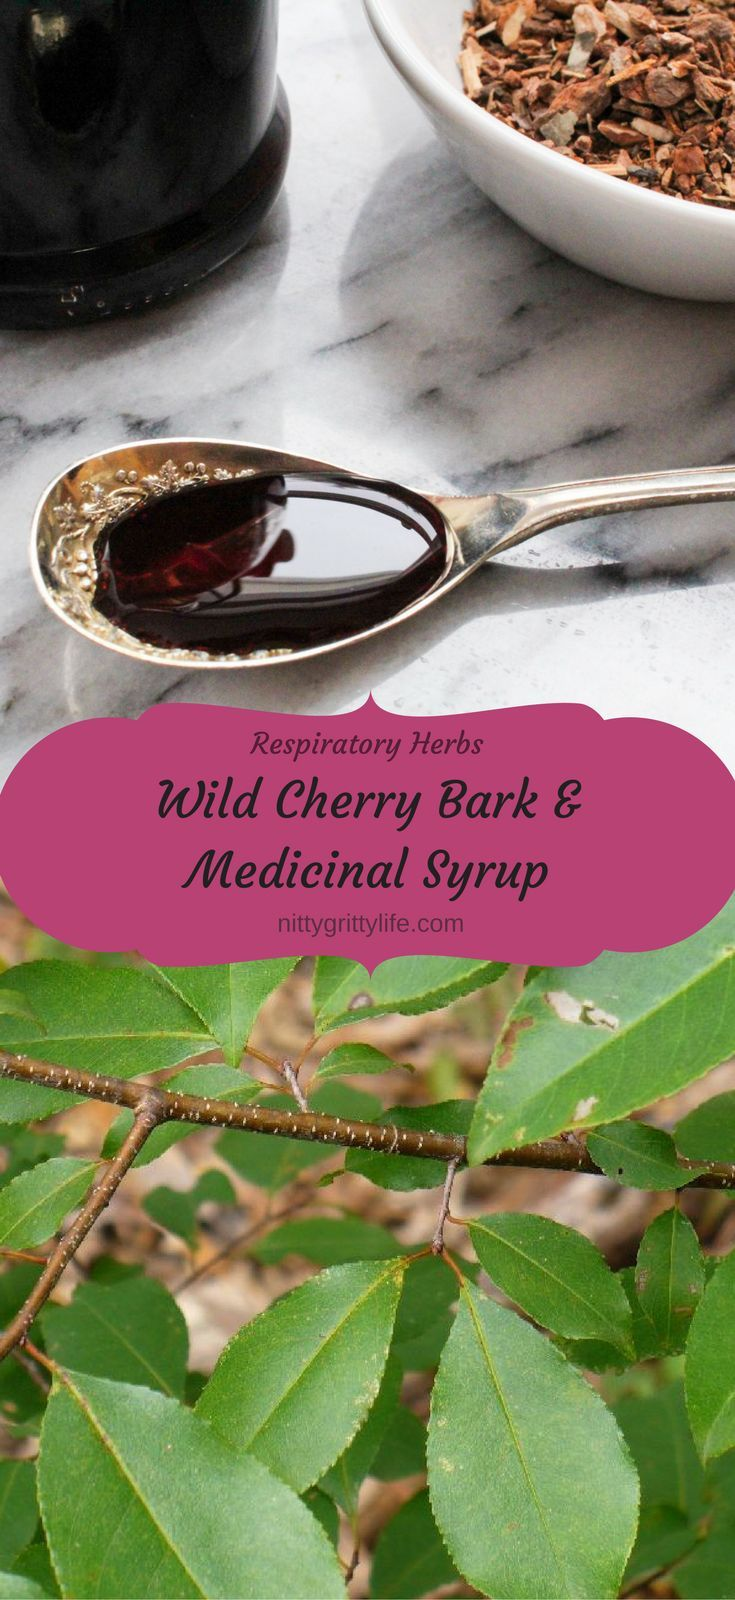 Center for holistic herbal therapy - Wild Cherry Bark S Antitussive Qualities Make It An Exceptional Herb To Use In Respiratory Formulations With